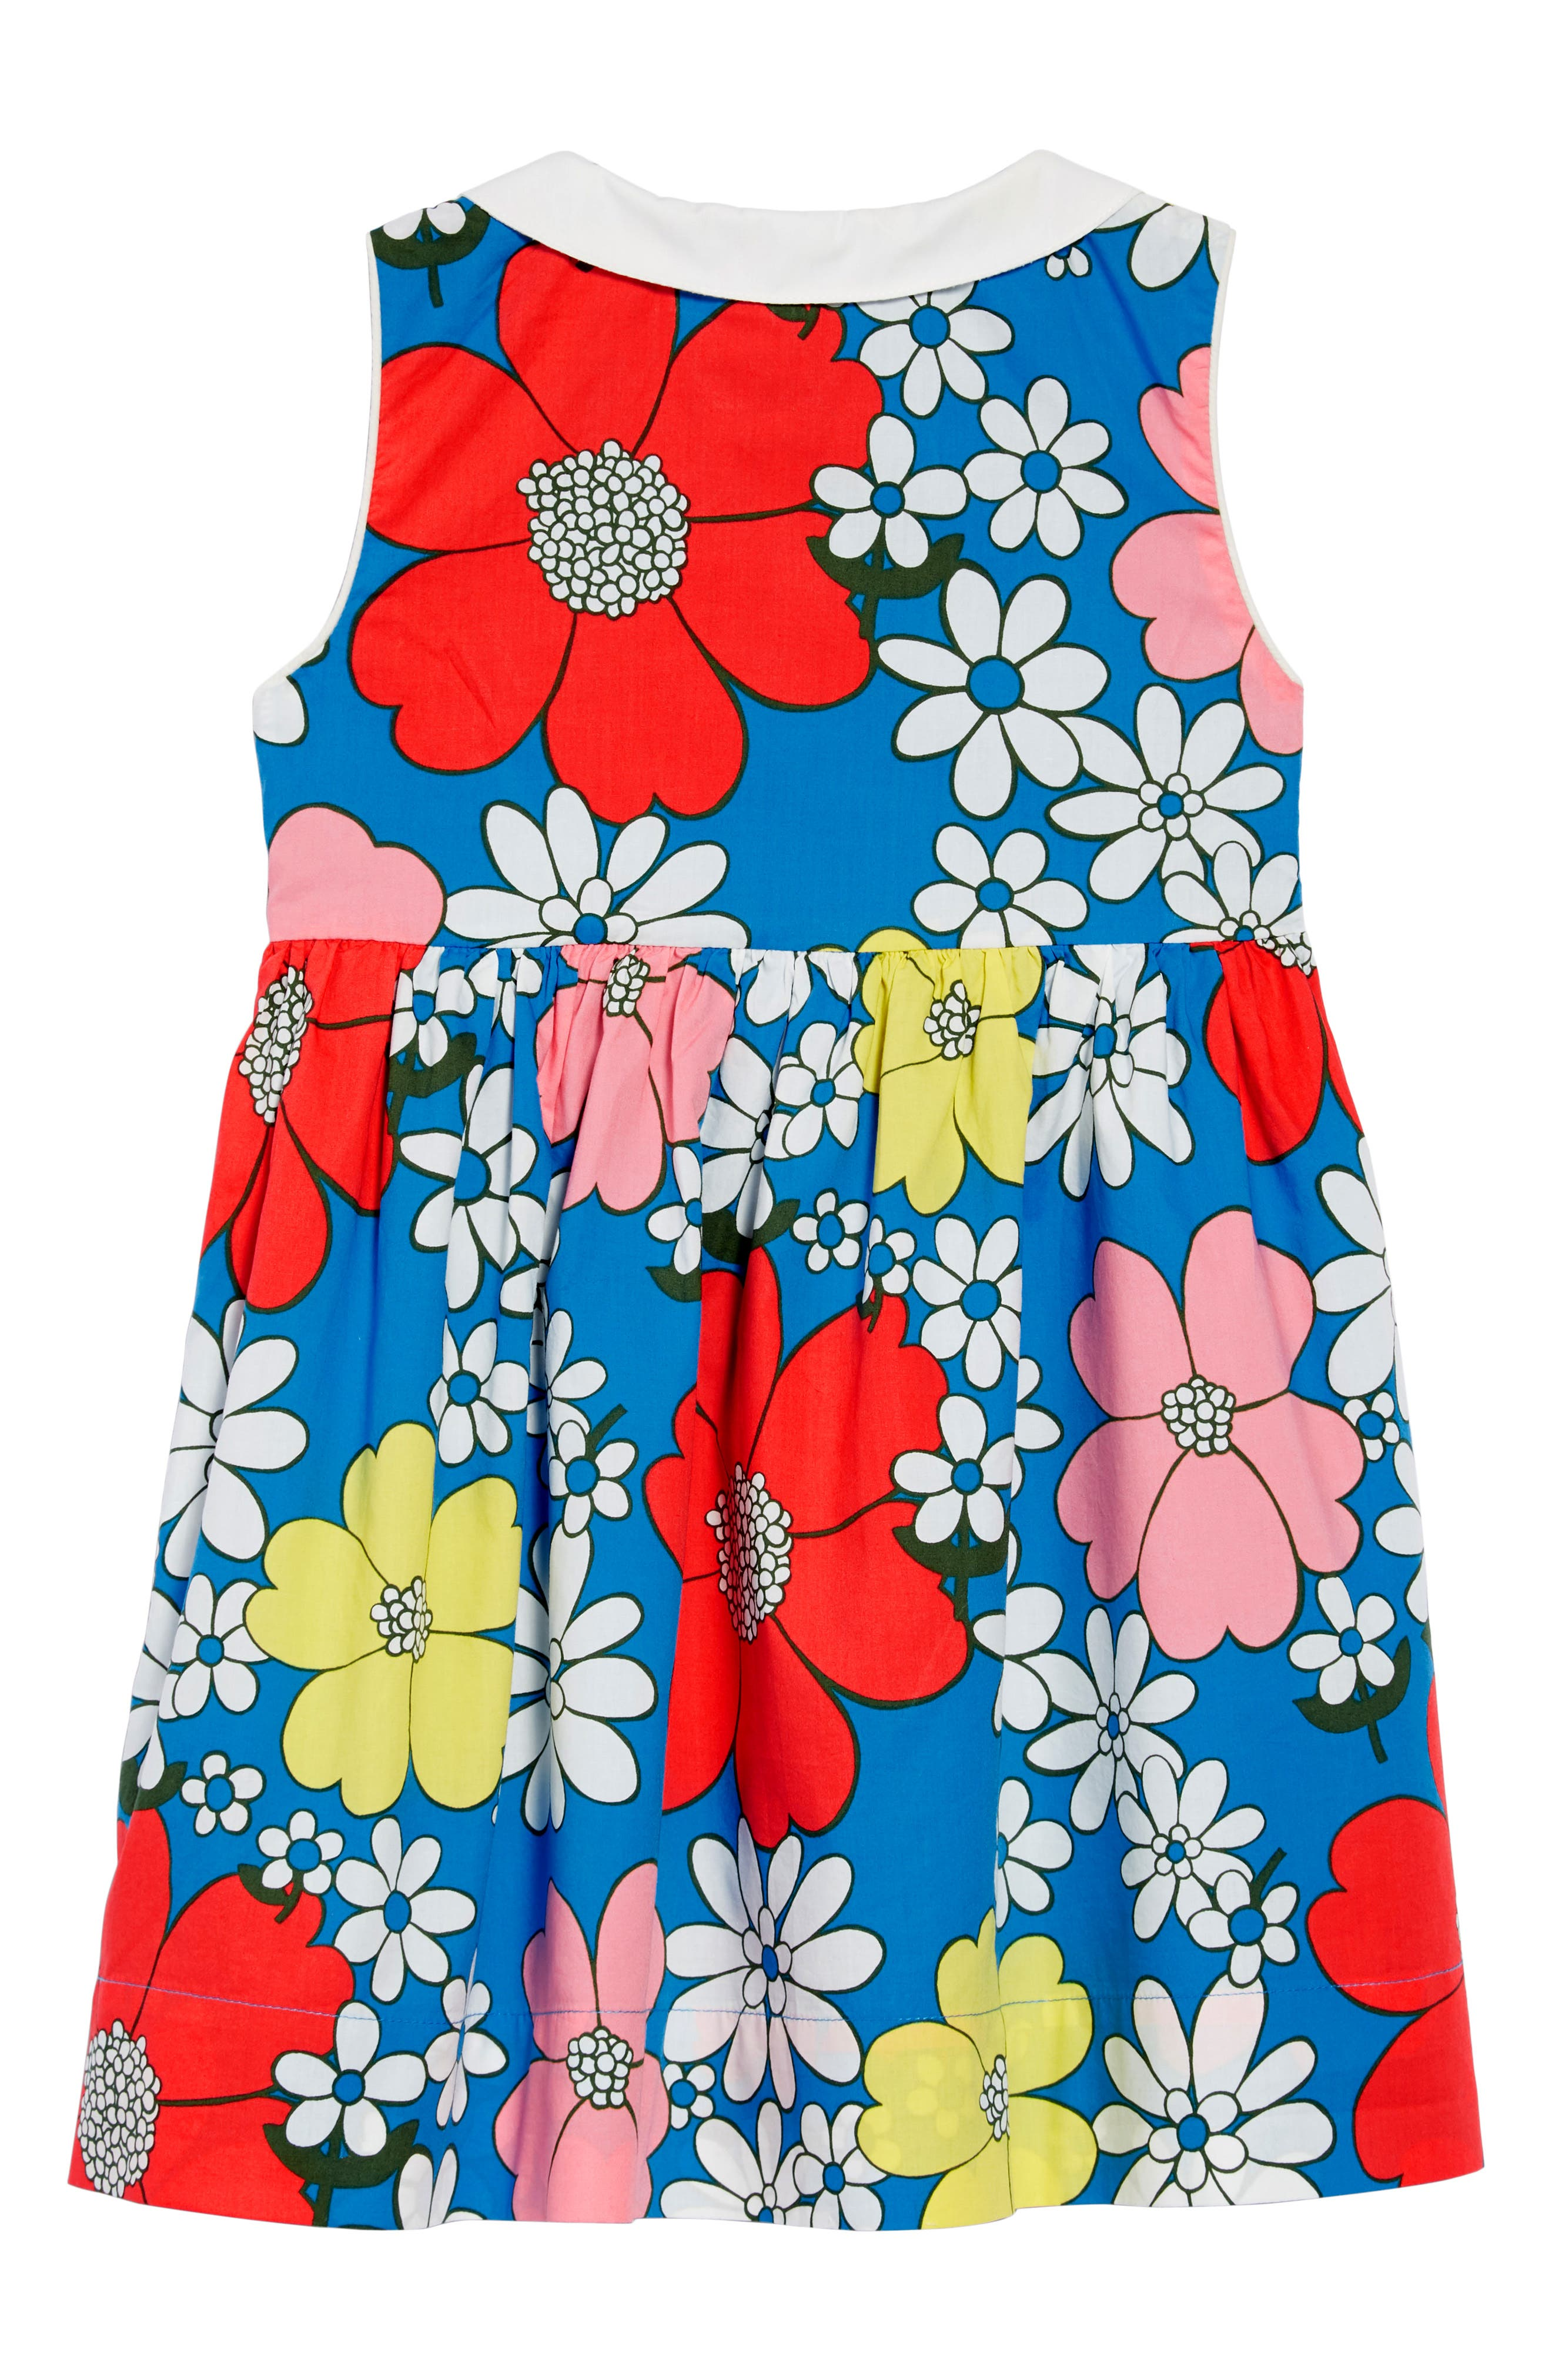 Floral Collared Dress,                             Alternate thumbnail 2, color,                             424